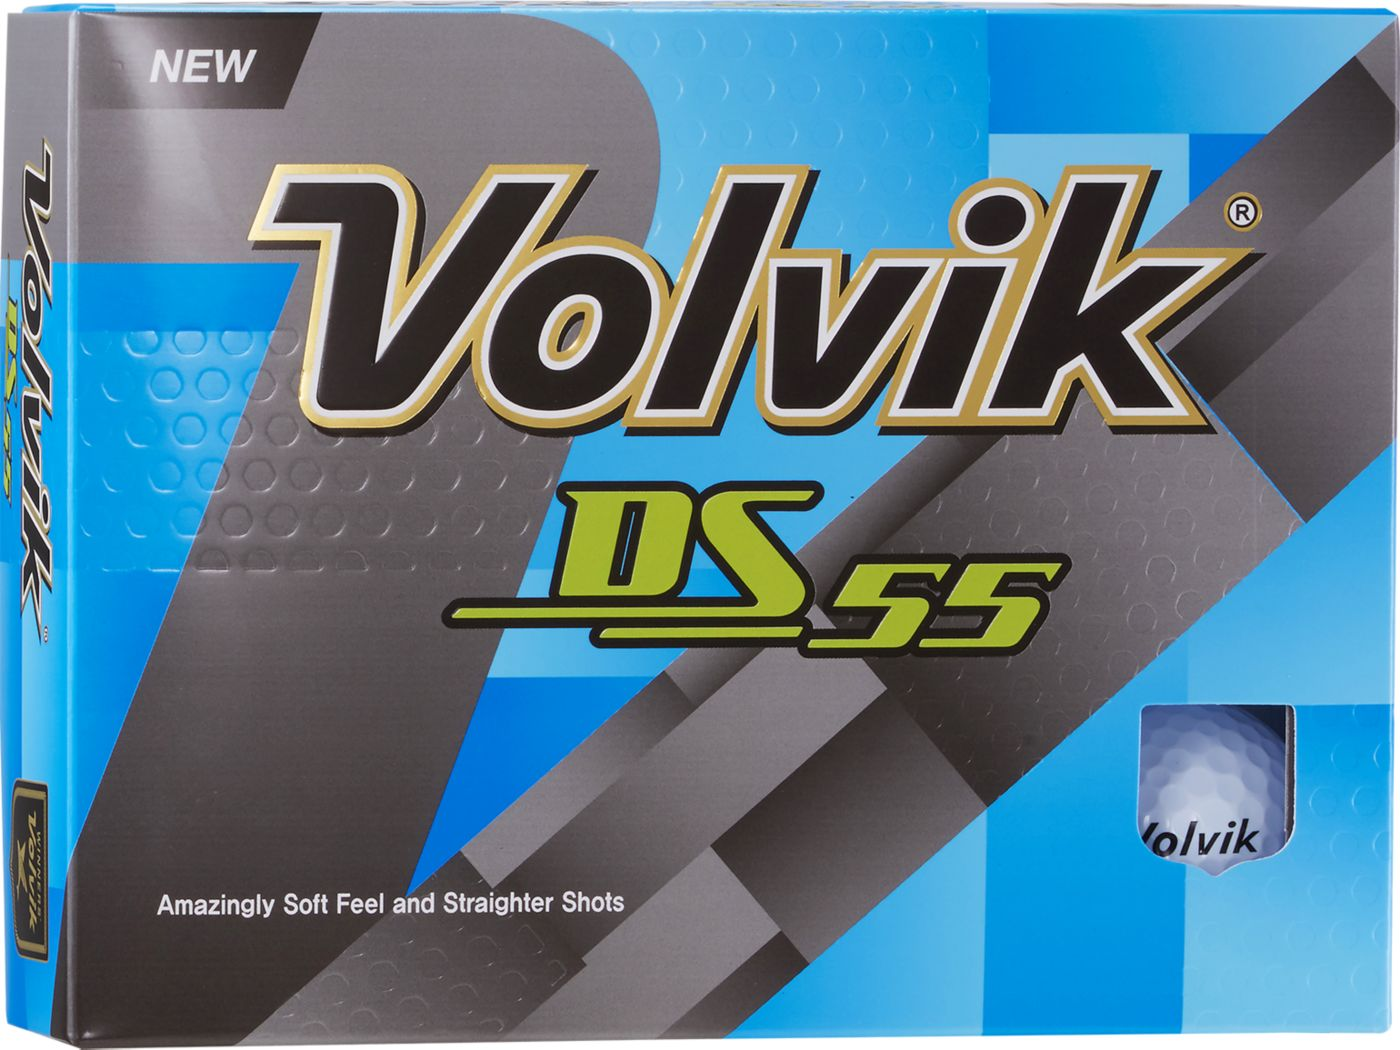 Volvik DS 55 Personalized Golf Balls